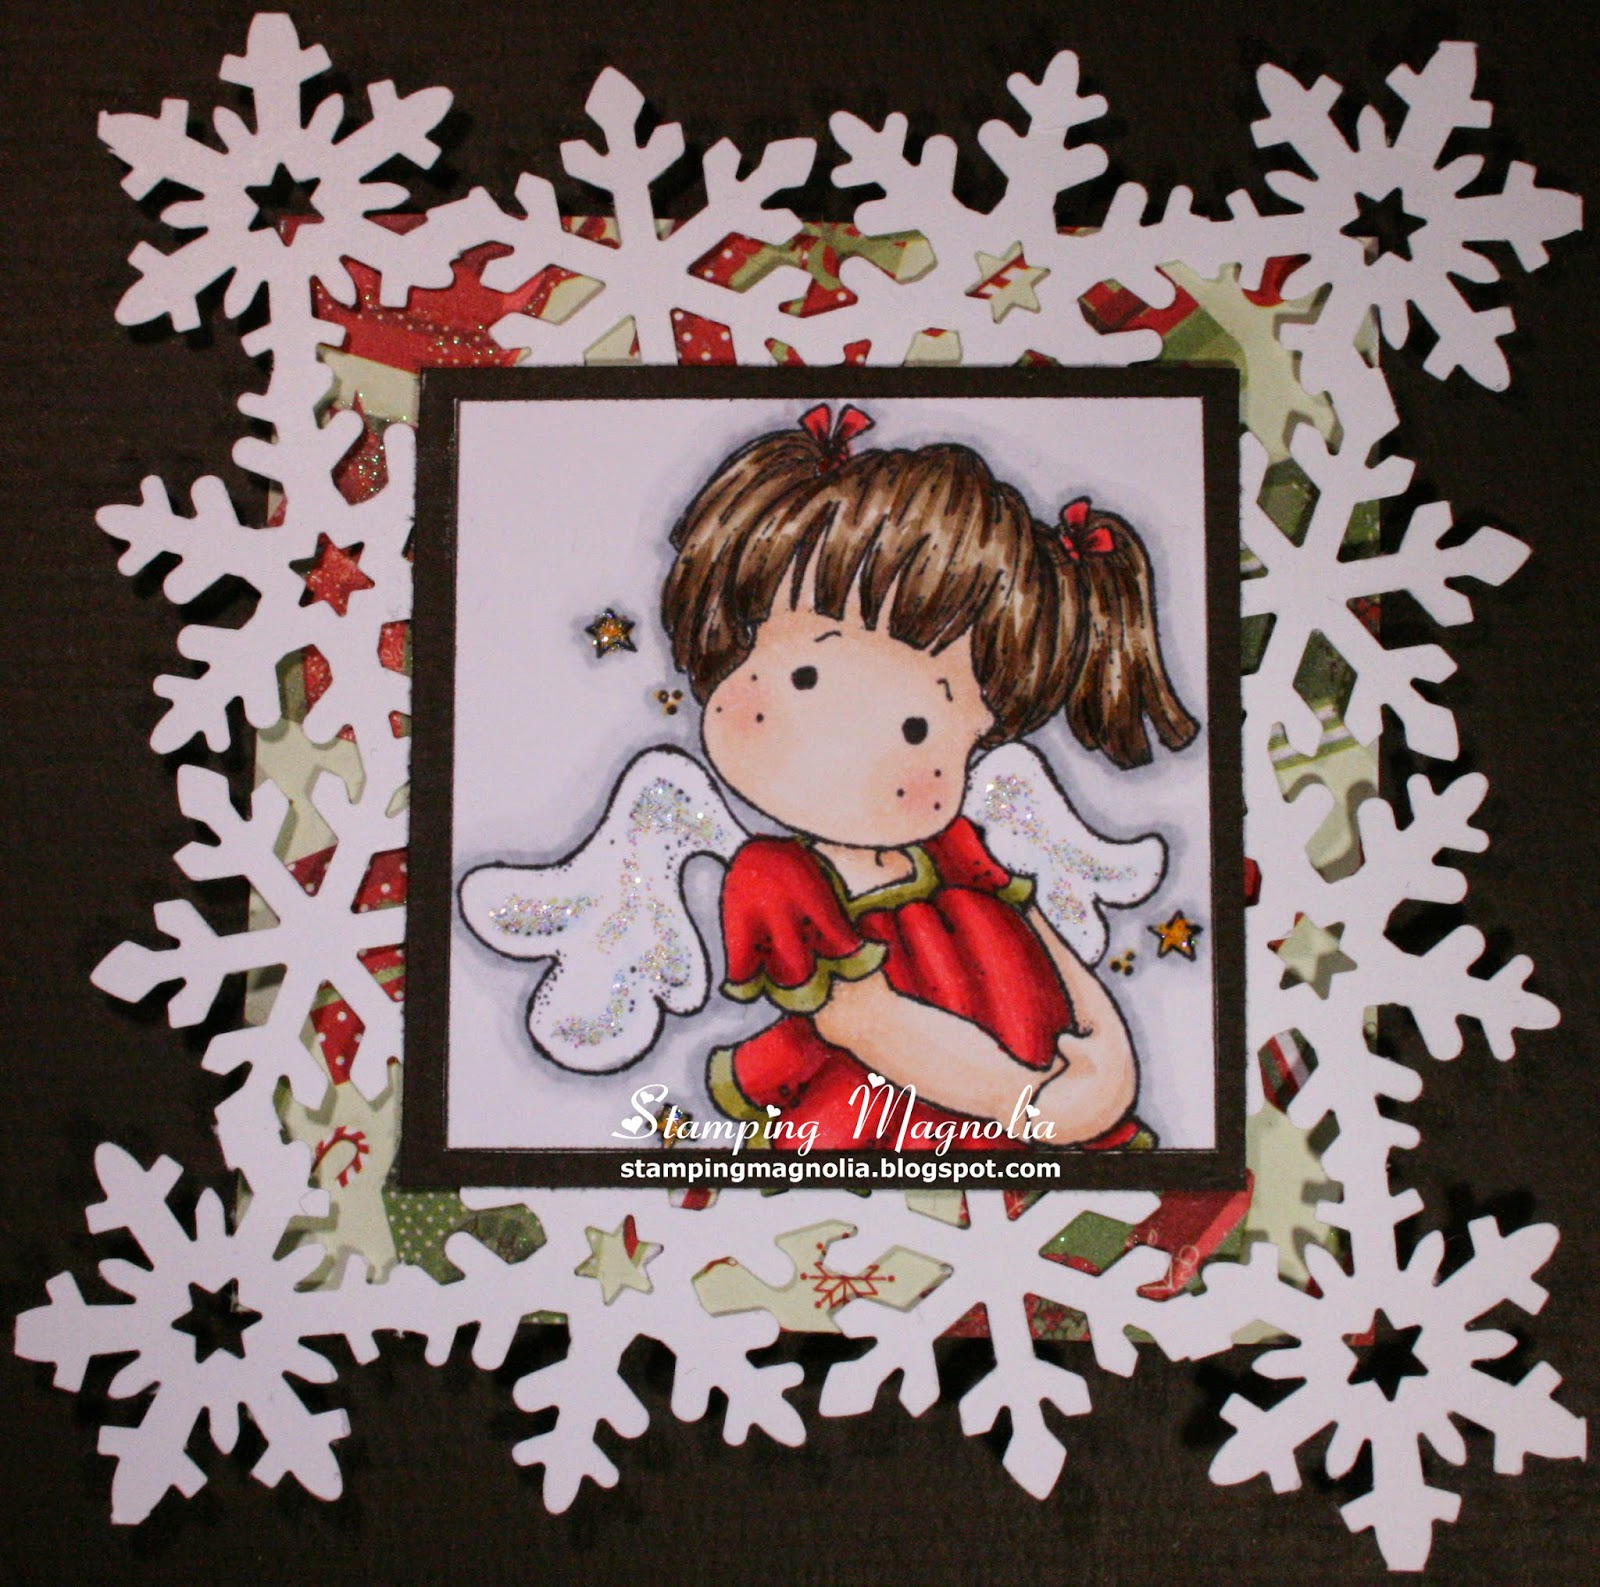 Coloring Magnolia Stamp Little Merry Christmas Collection - Dancing With Stars Tild